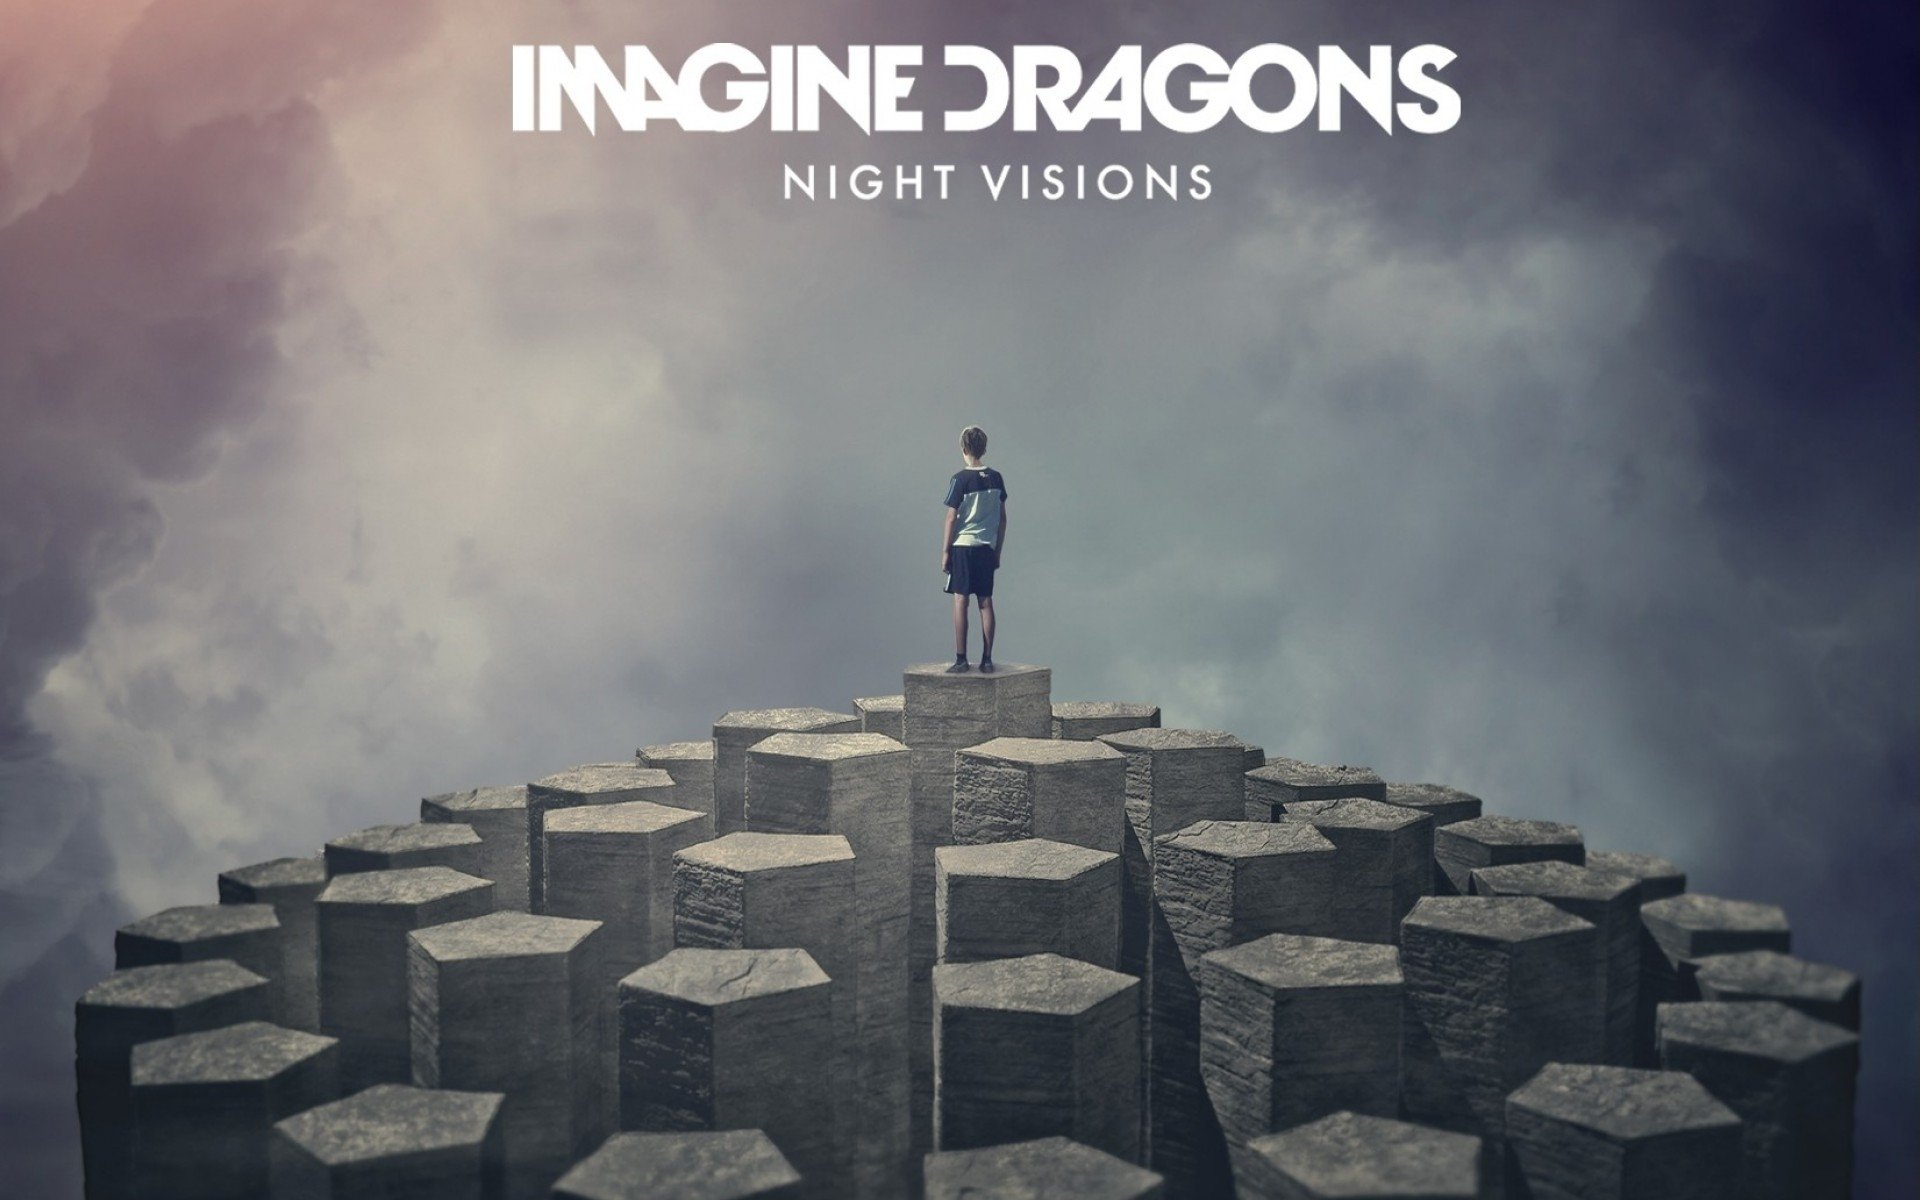 38 Imagine Dragons Hd Wallpapers Background Images Wallpaper Abyss